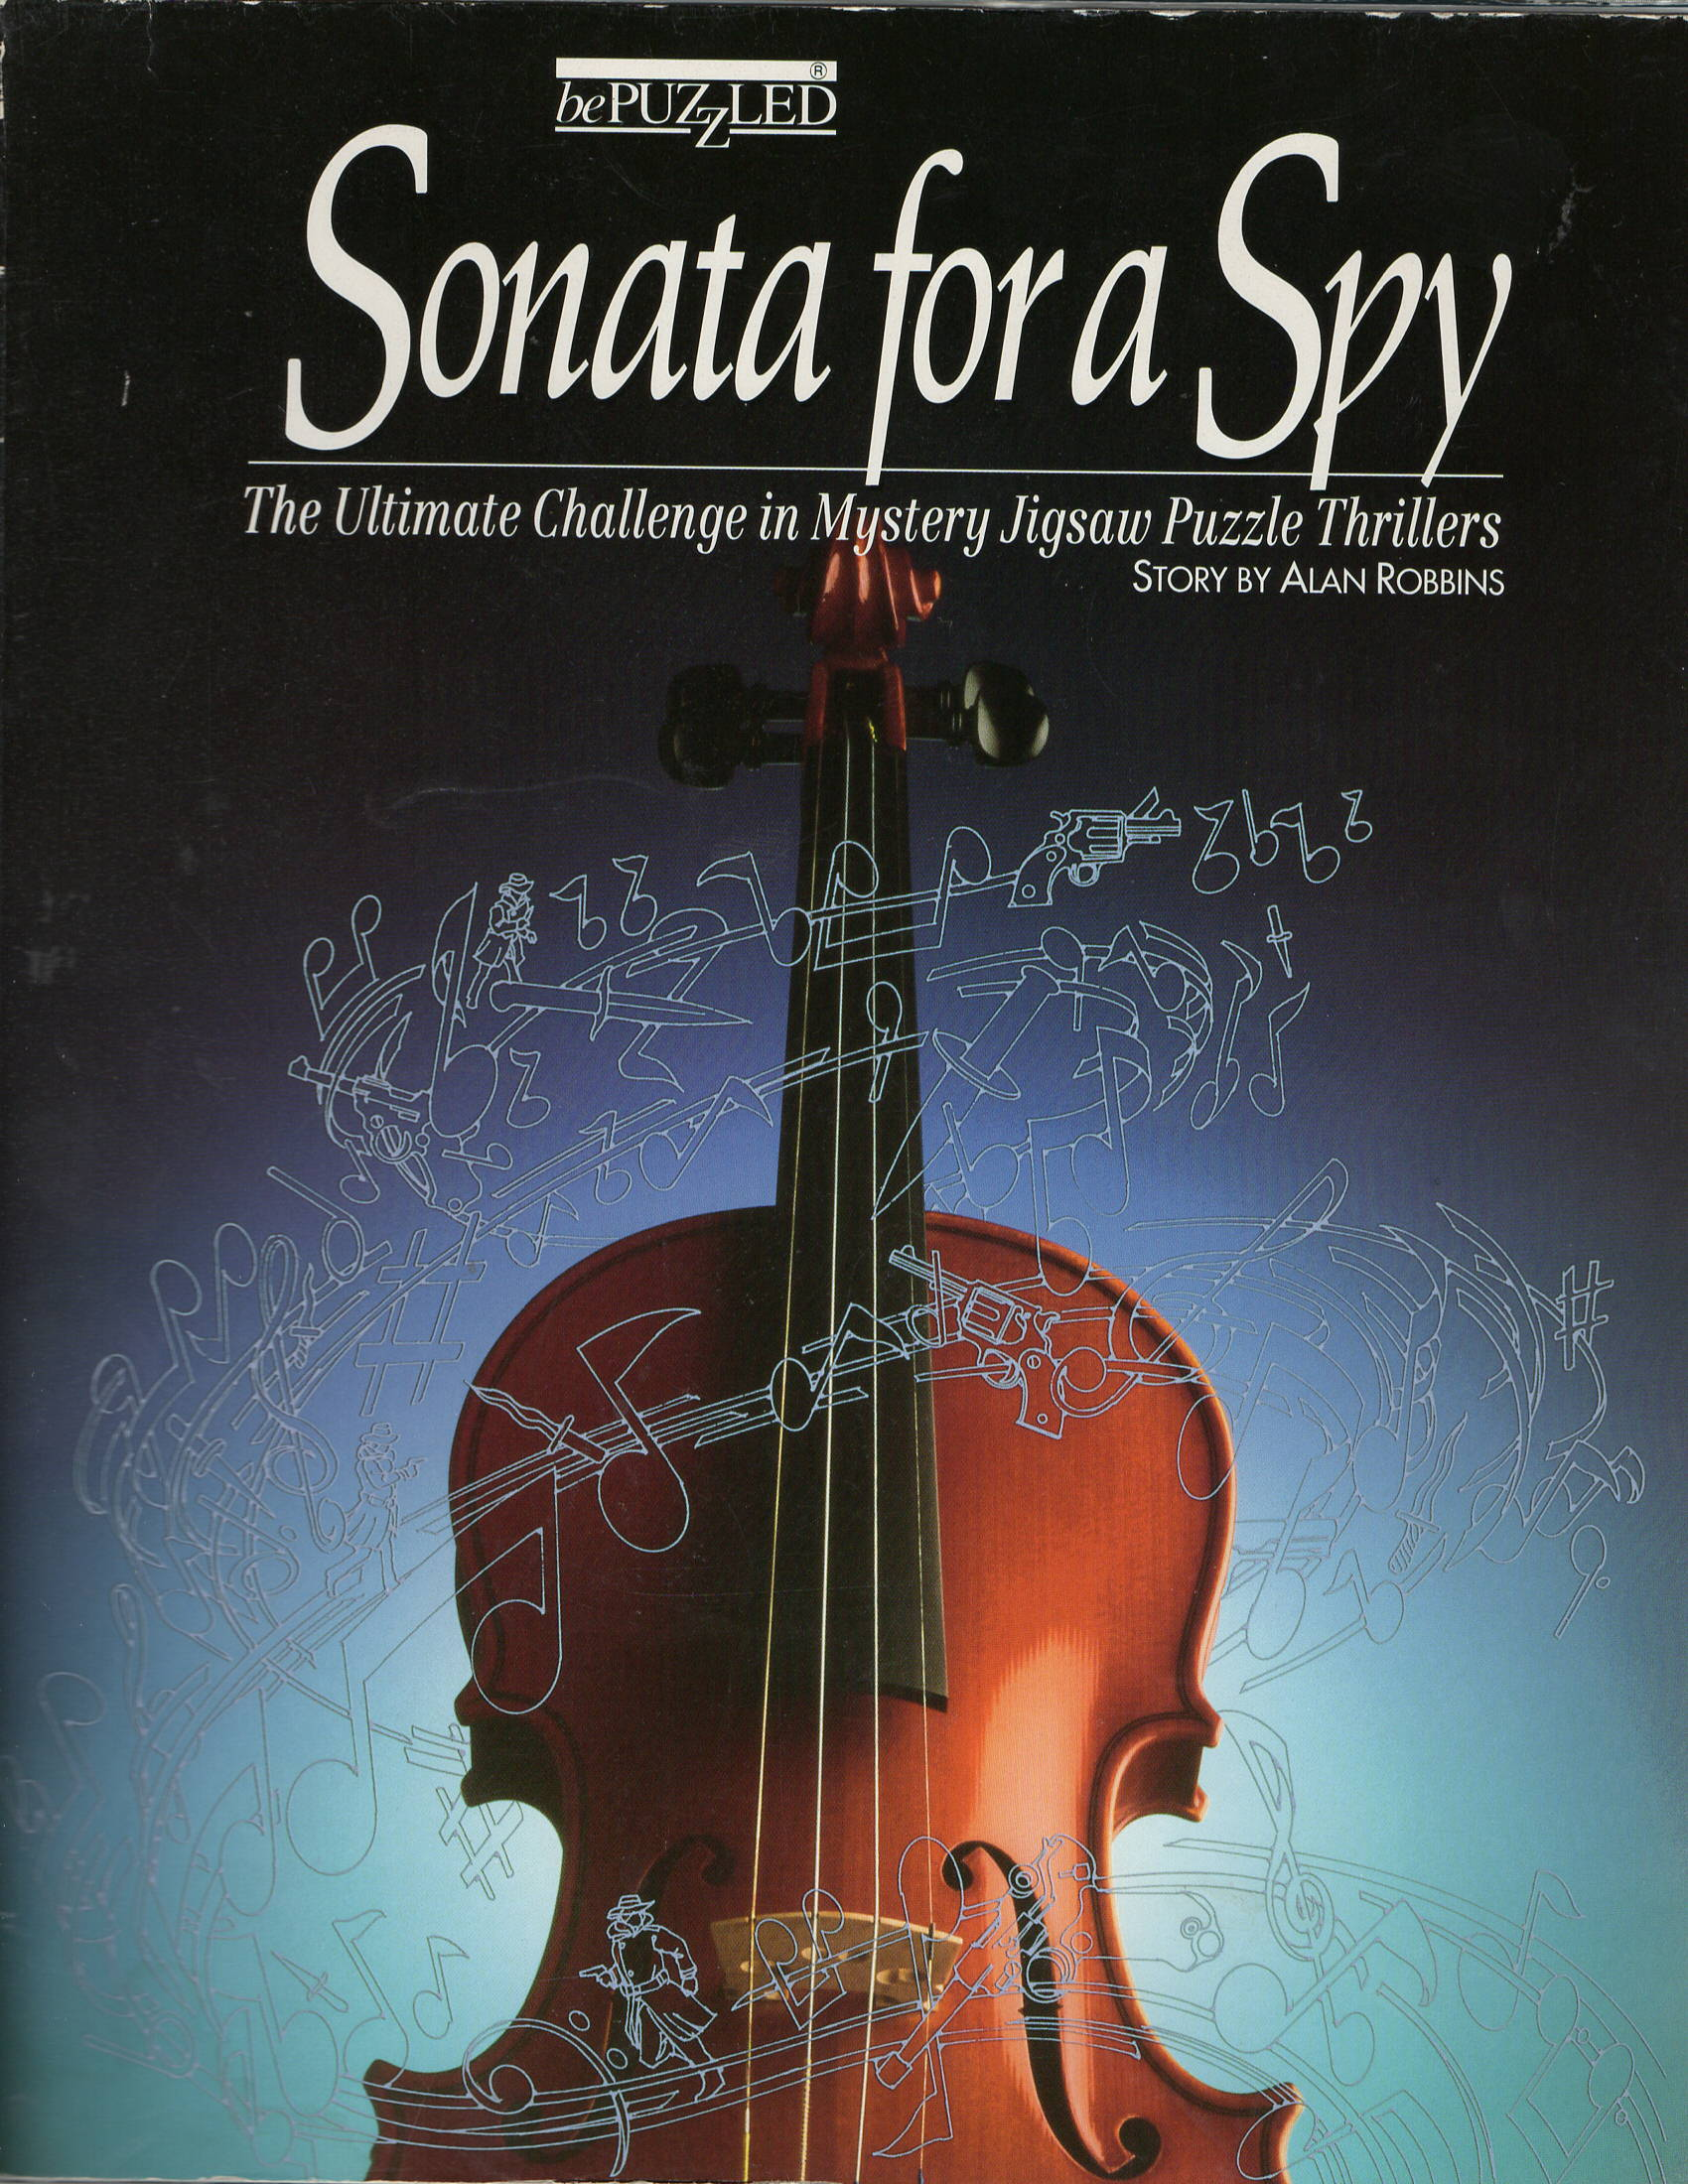 bepuzzled-1000-Sonata-for-a-Spy